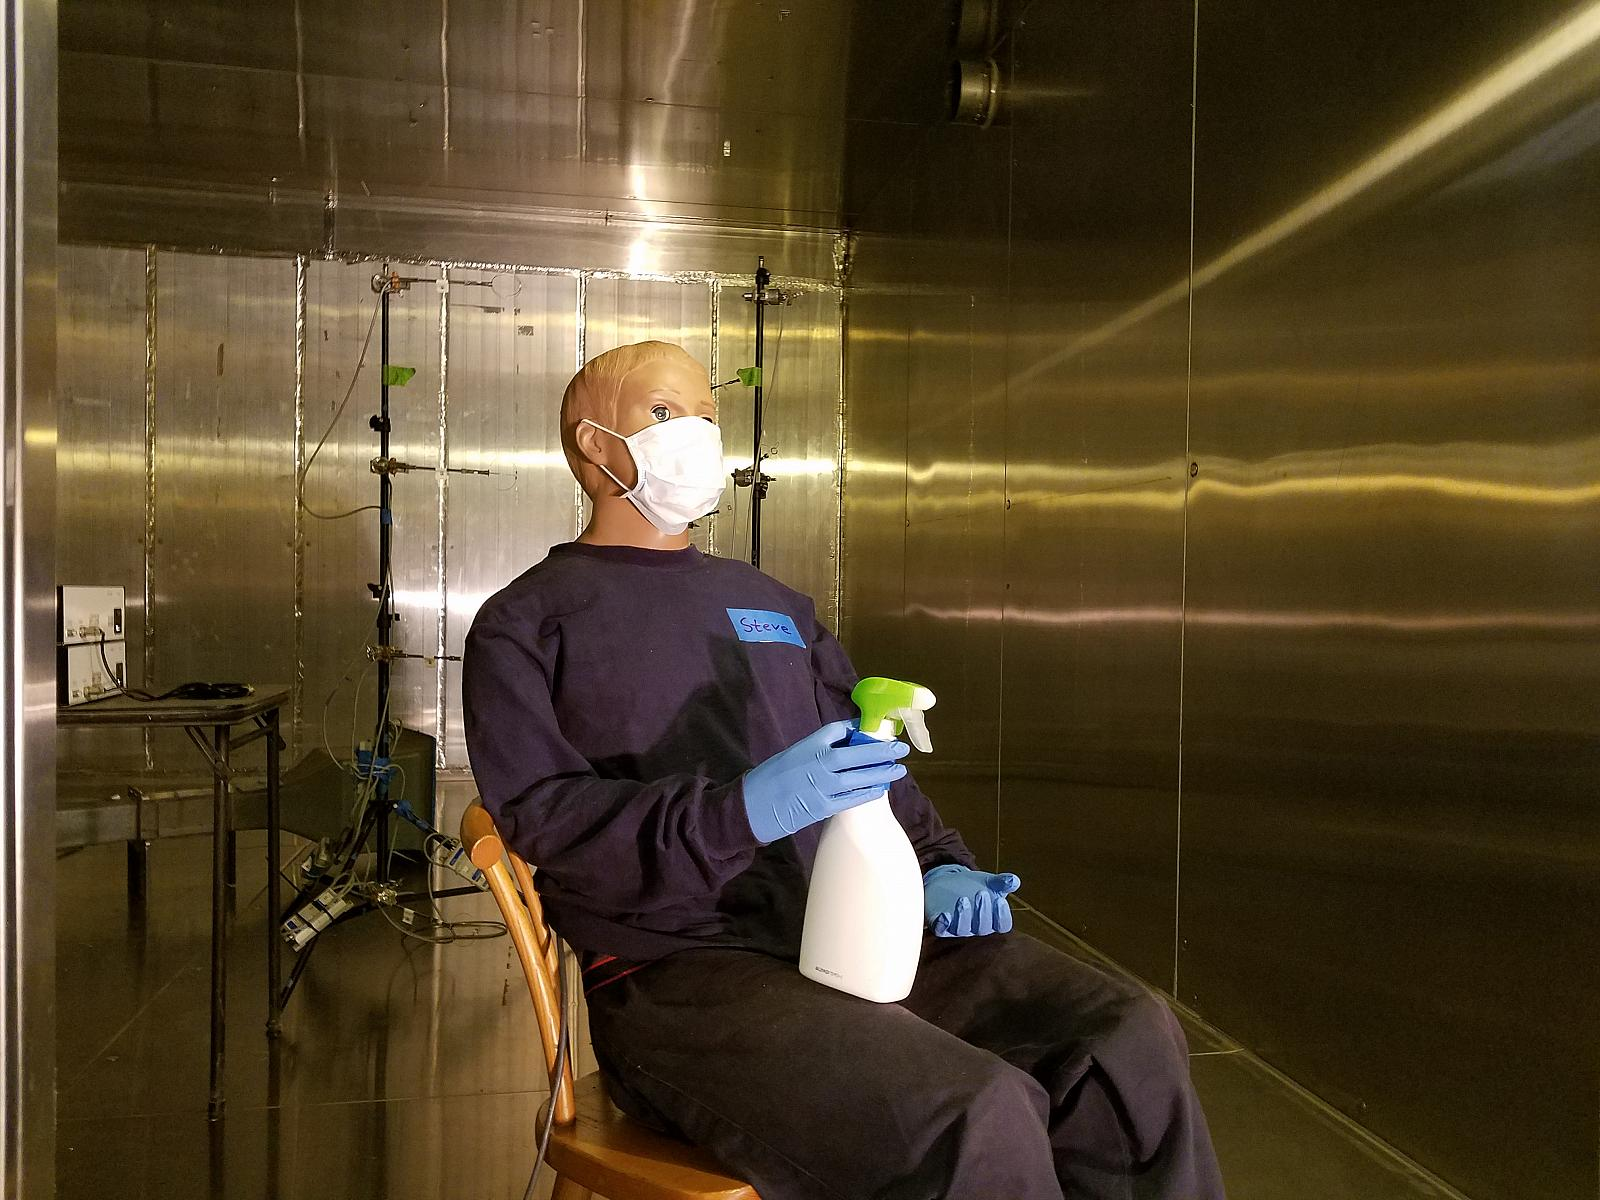 dummy in metal room sitting with spray bottle in hand